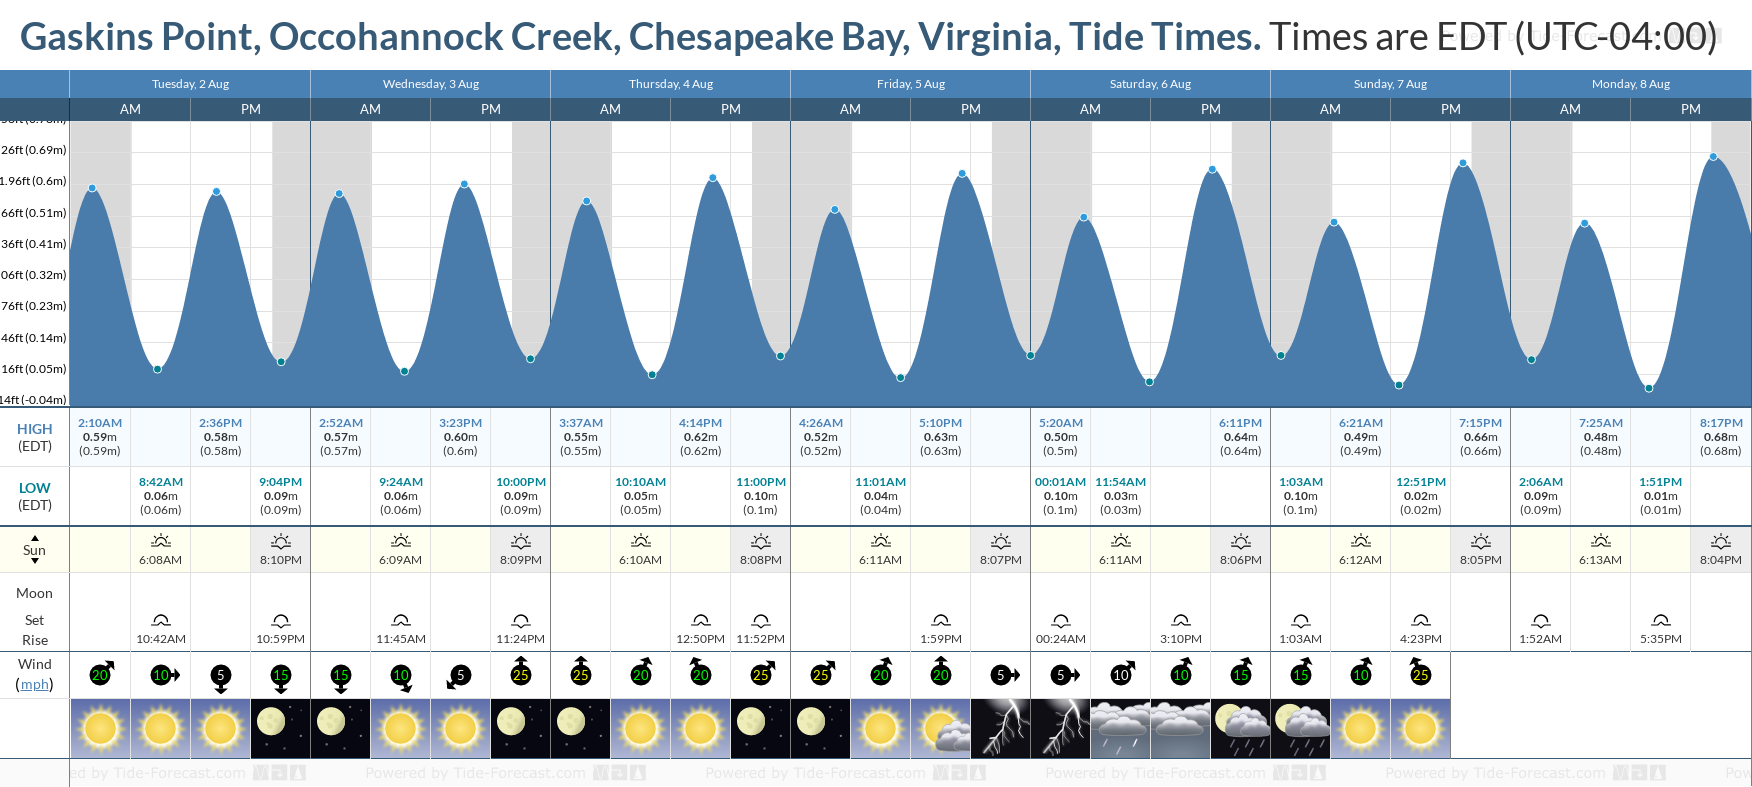 Gaskins Point, Occohannock Creek, Chesapeake Bay, Virginia Tide Chart including high and low tide tide times for the next 7 days